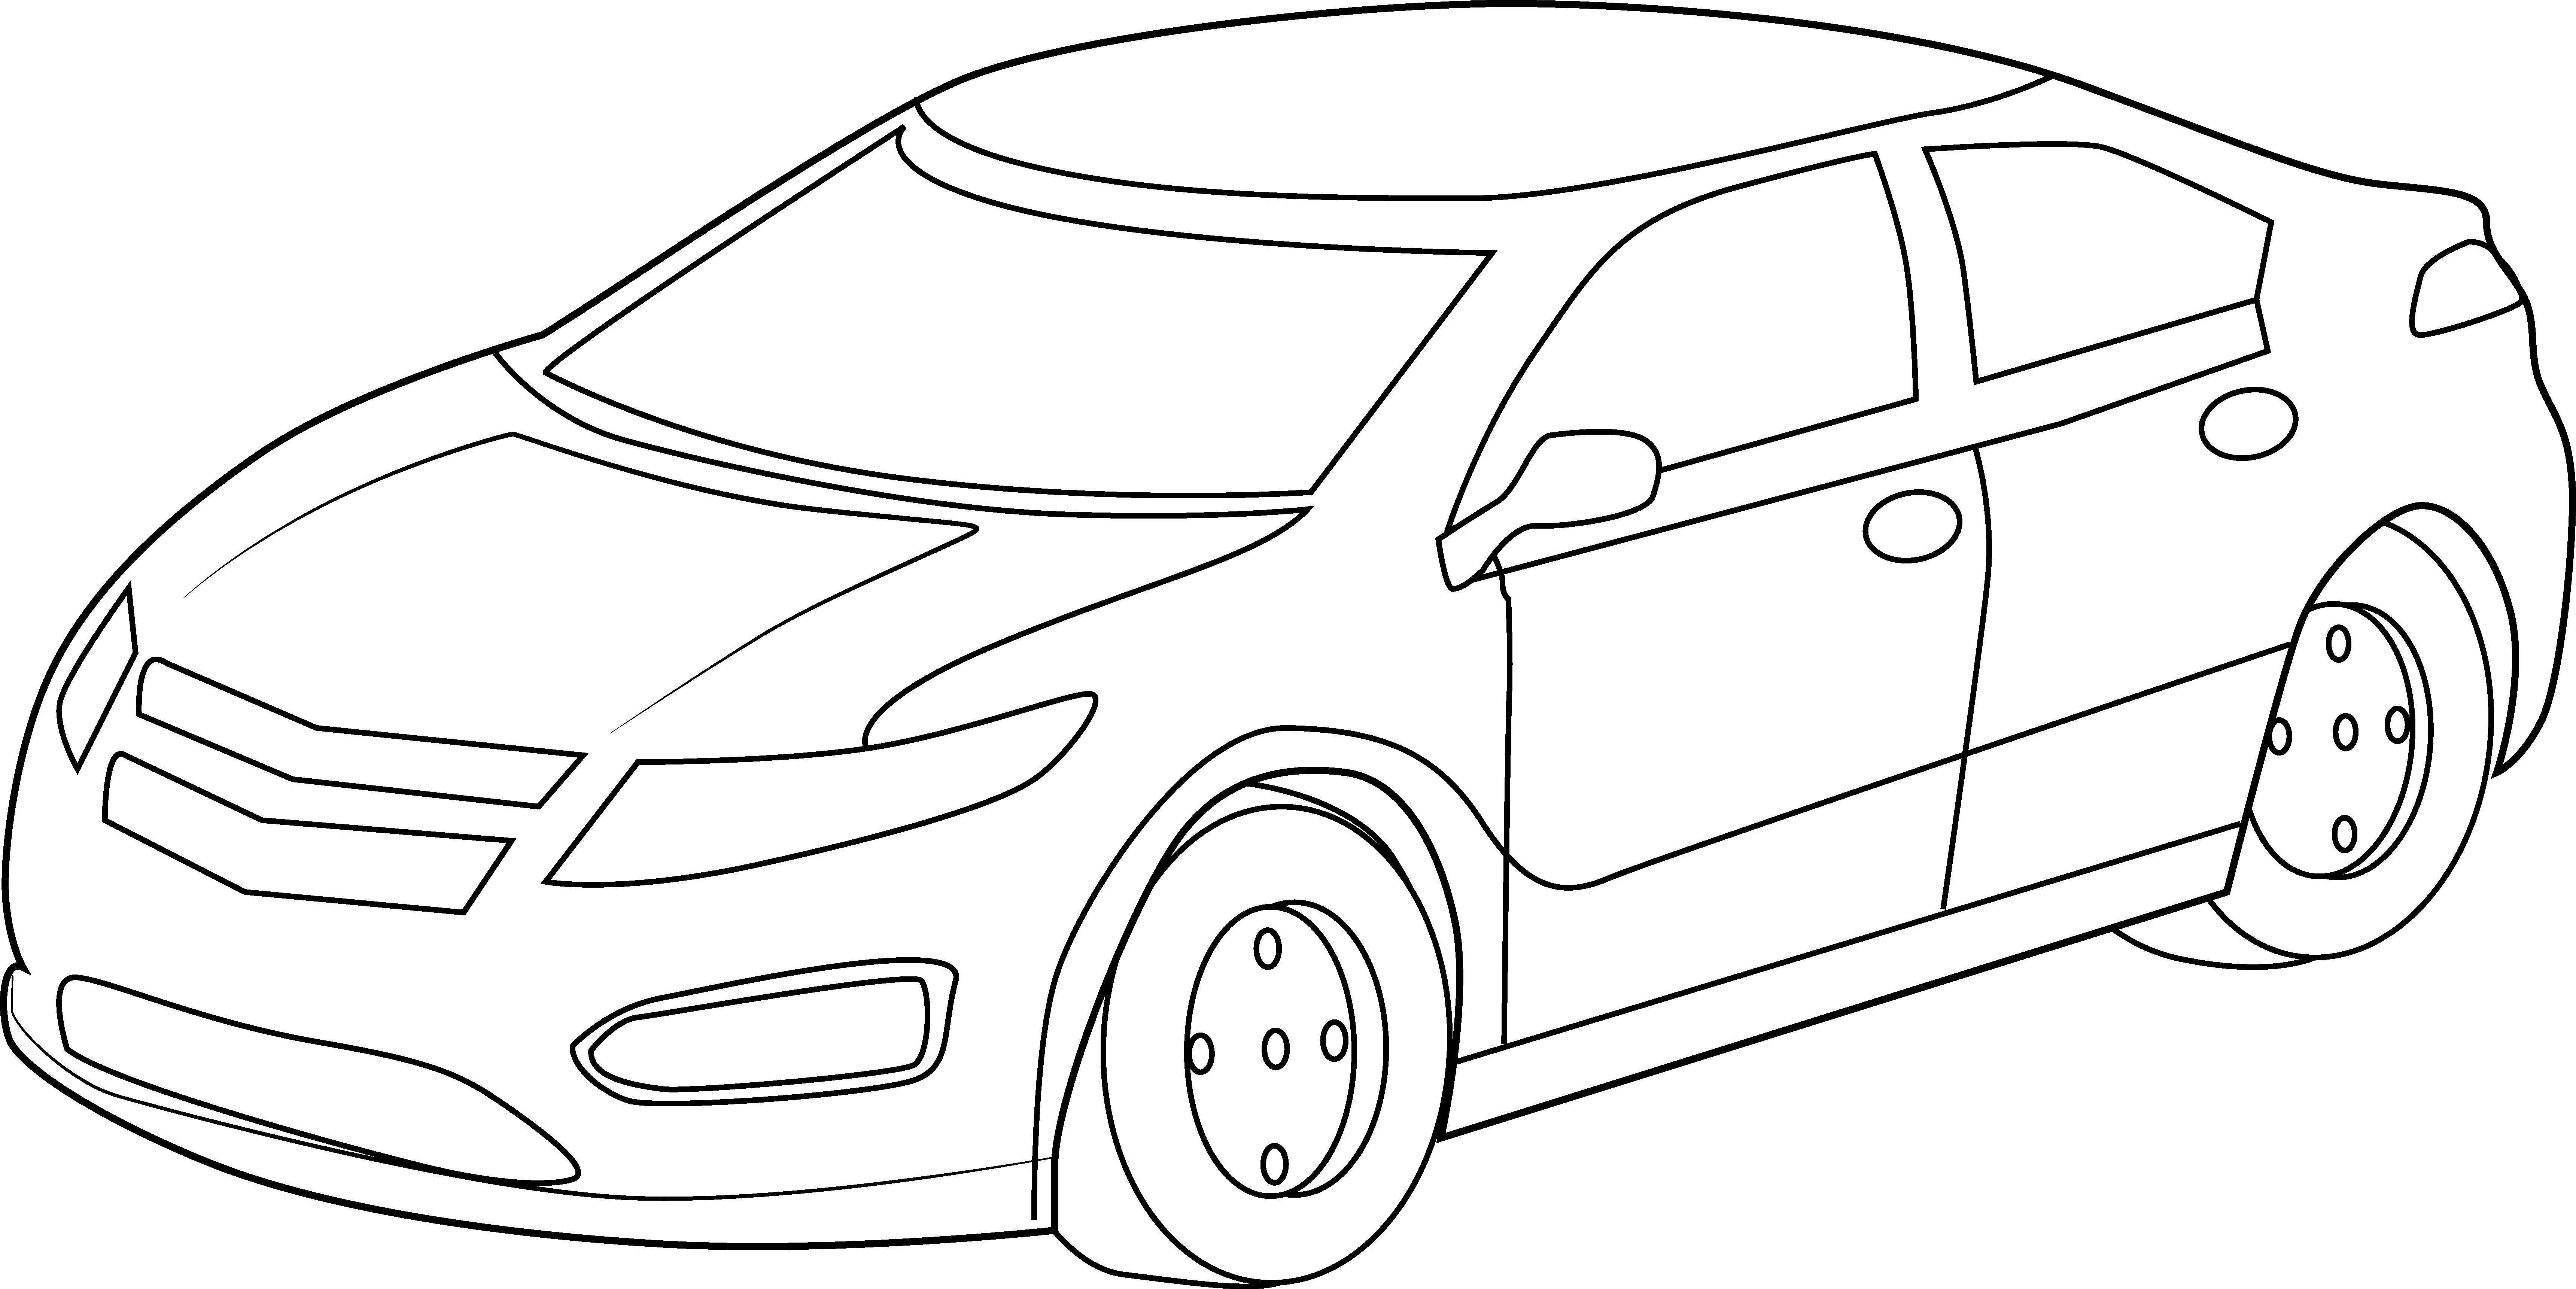 6881x3443 Simple Race Car Coloring Pages Awesome Mater Coloring Pages